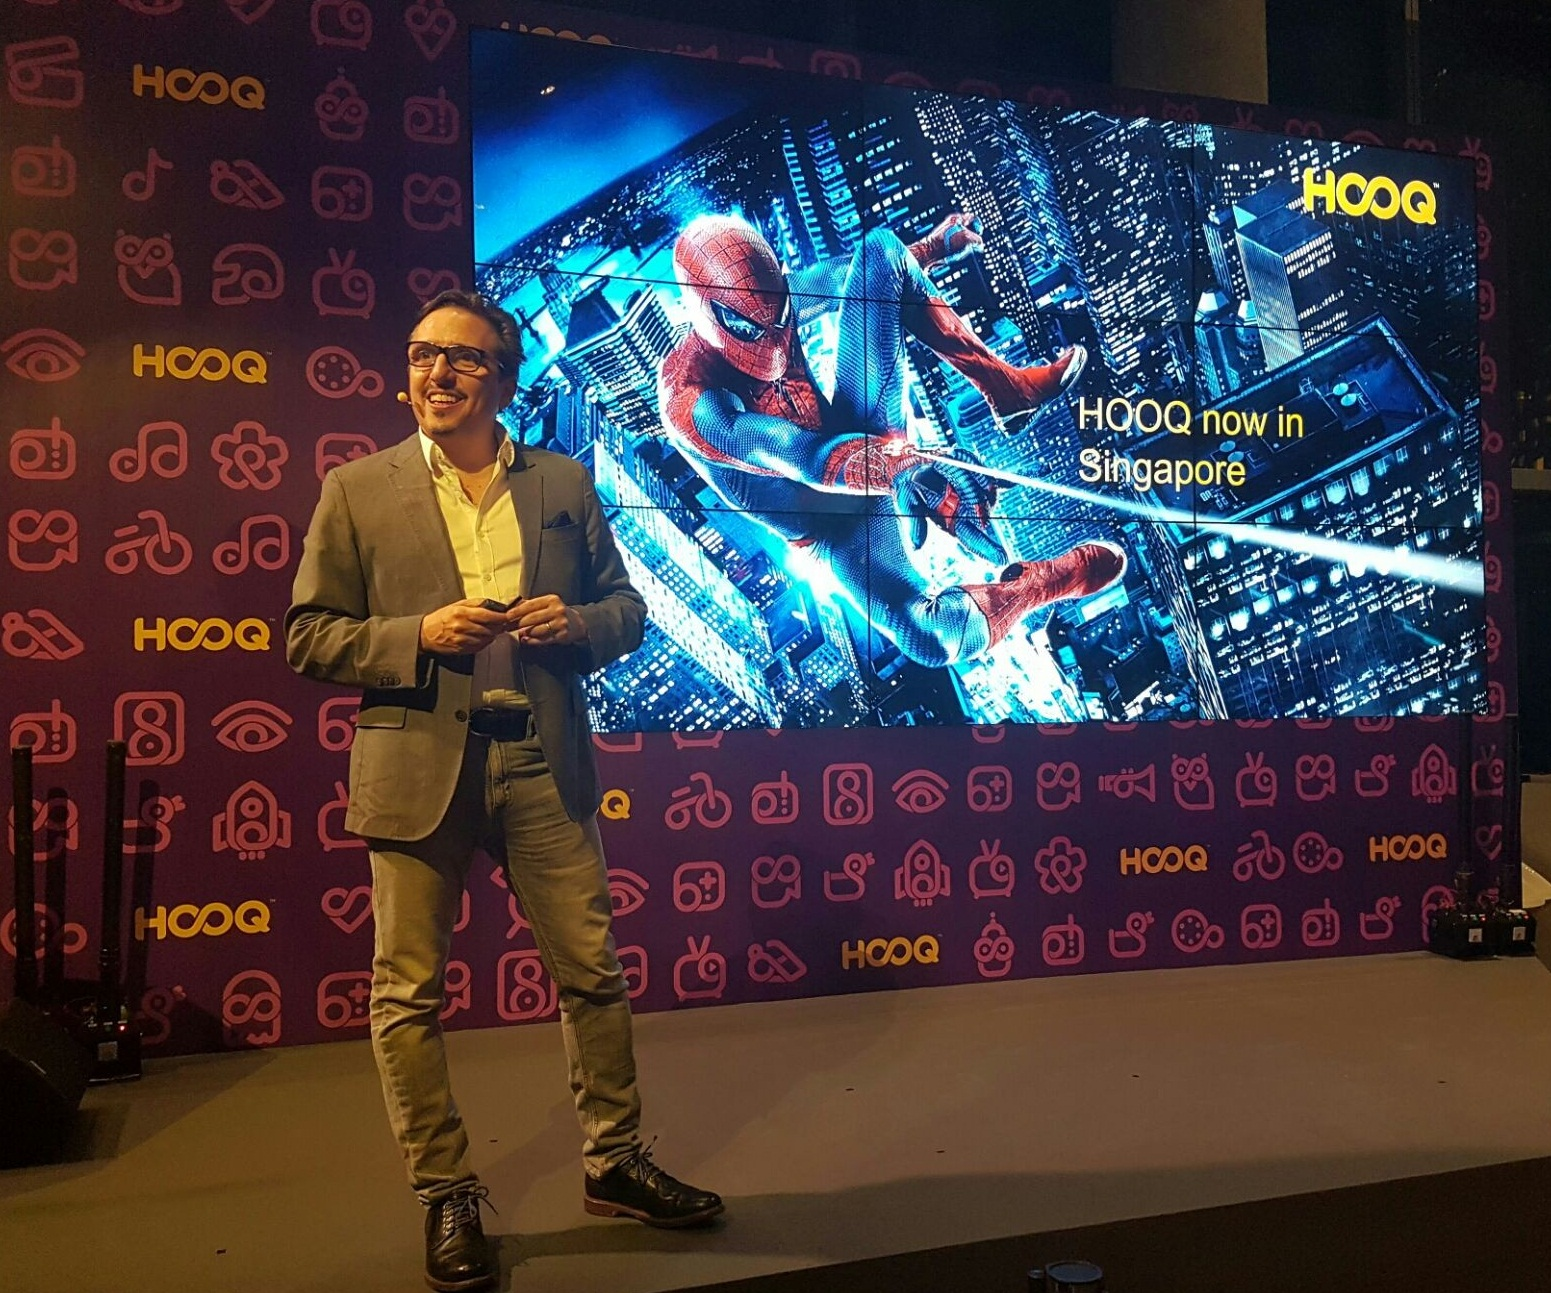 WorkSmart Asia: HOOQ Video-on-demand Service Launches In